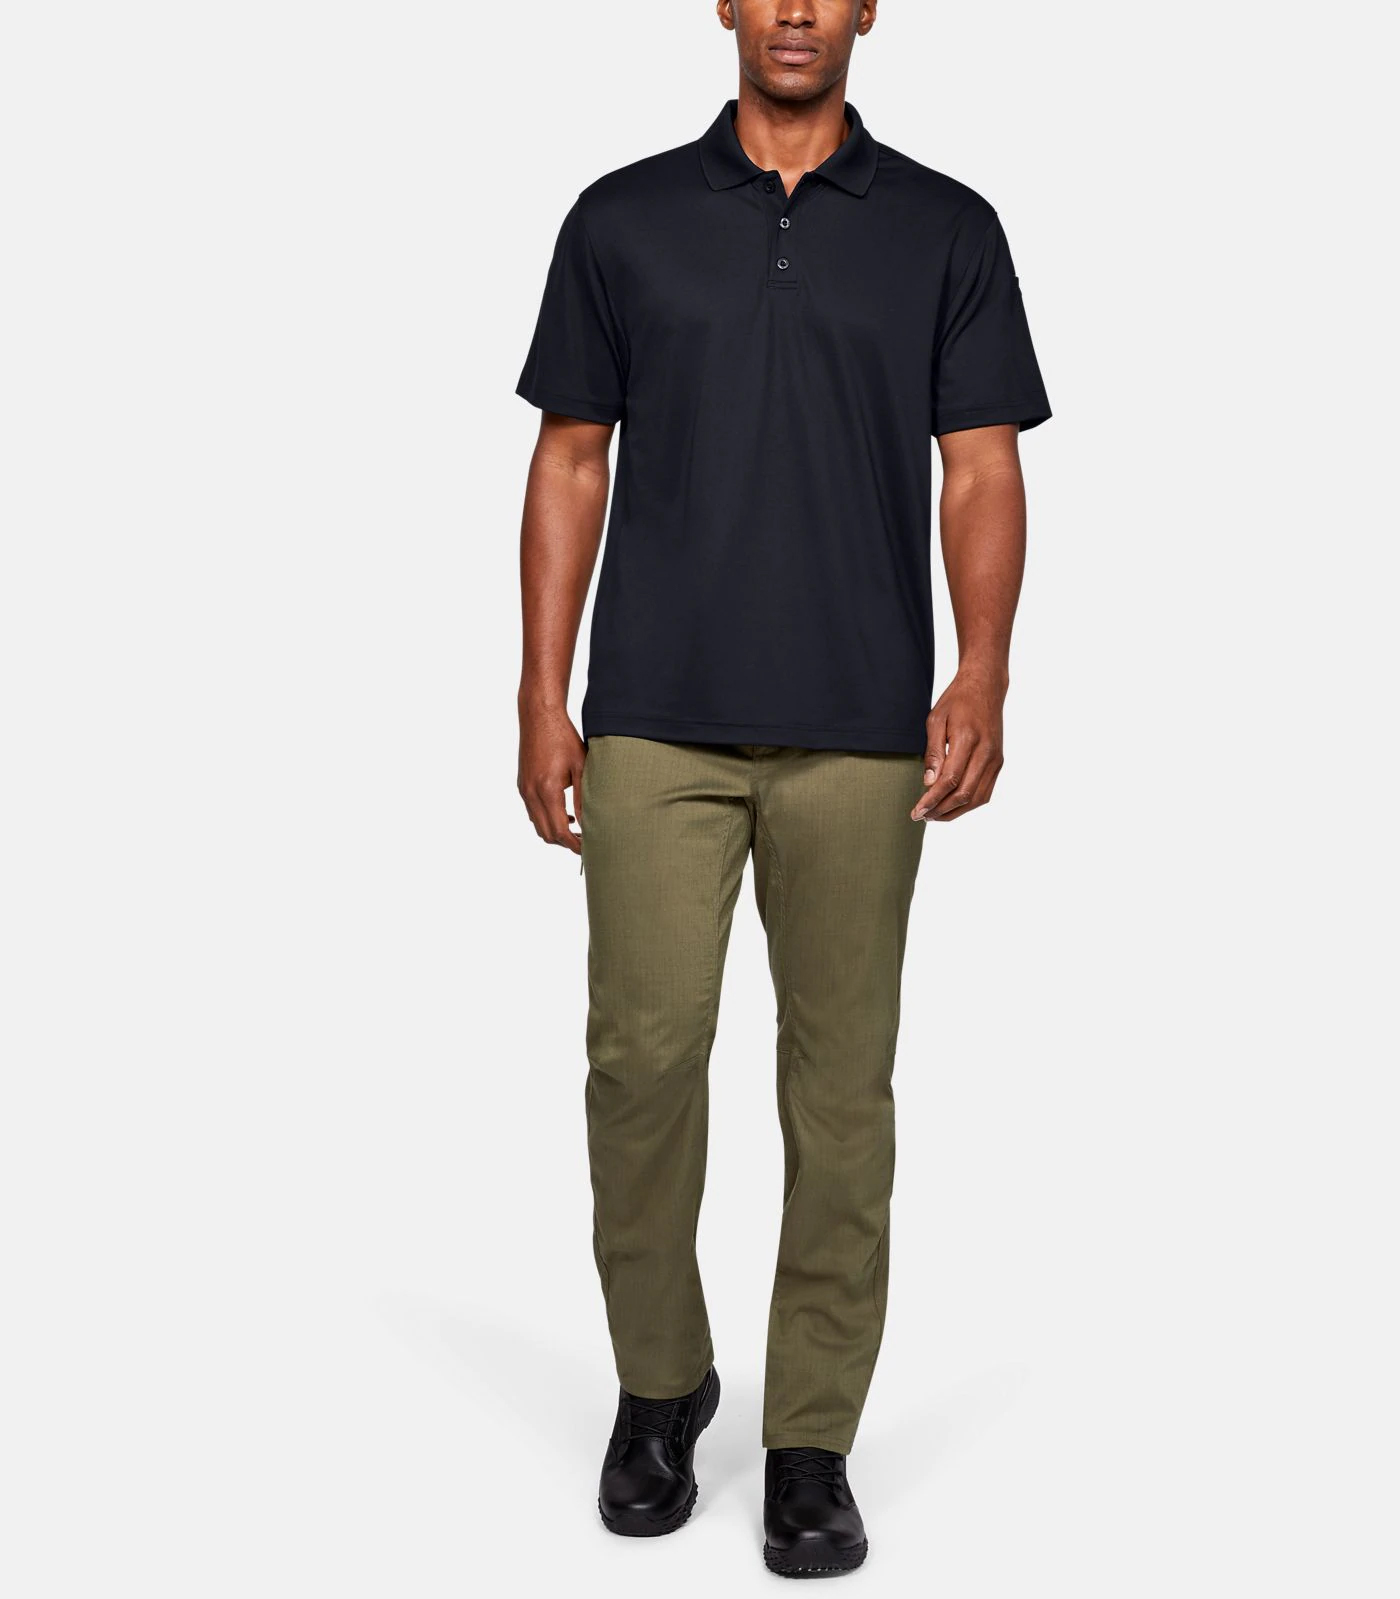 MENS_POLO_TacPerformance-SS_UAR1279759001_06